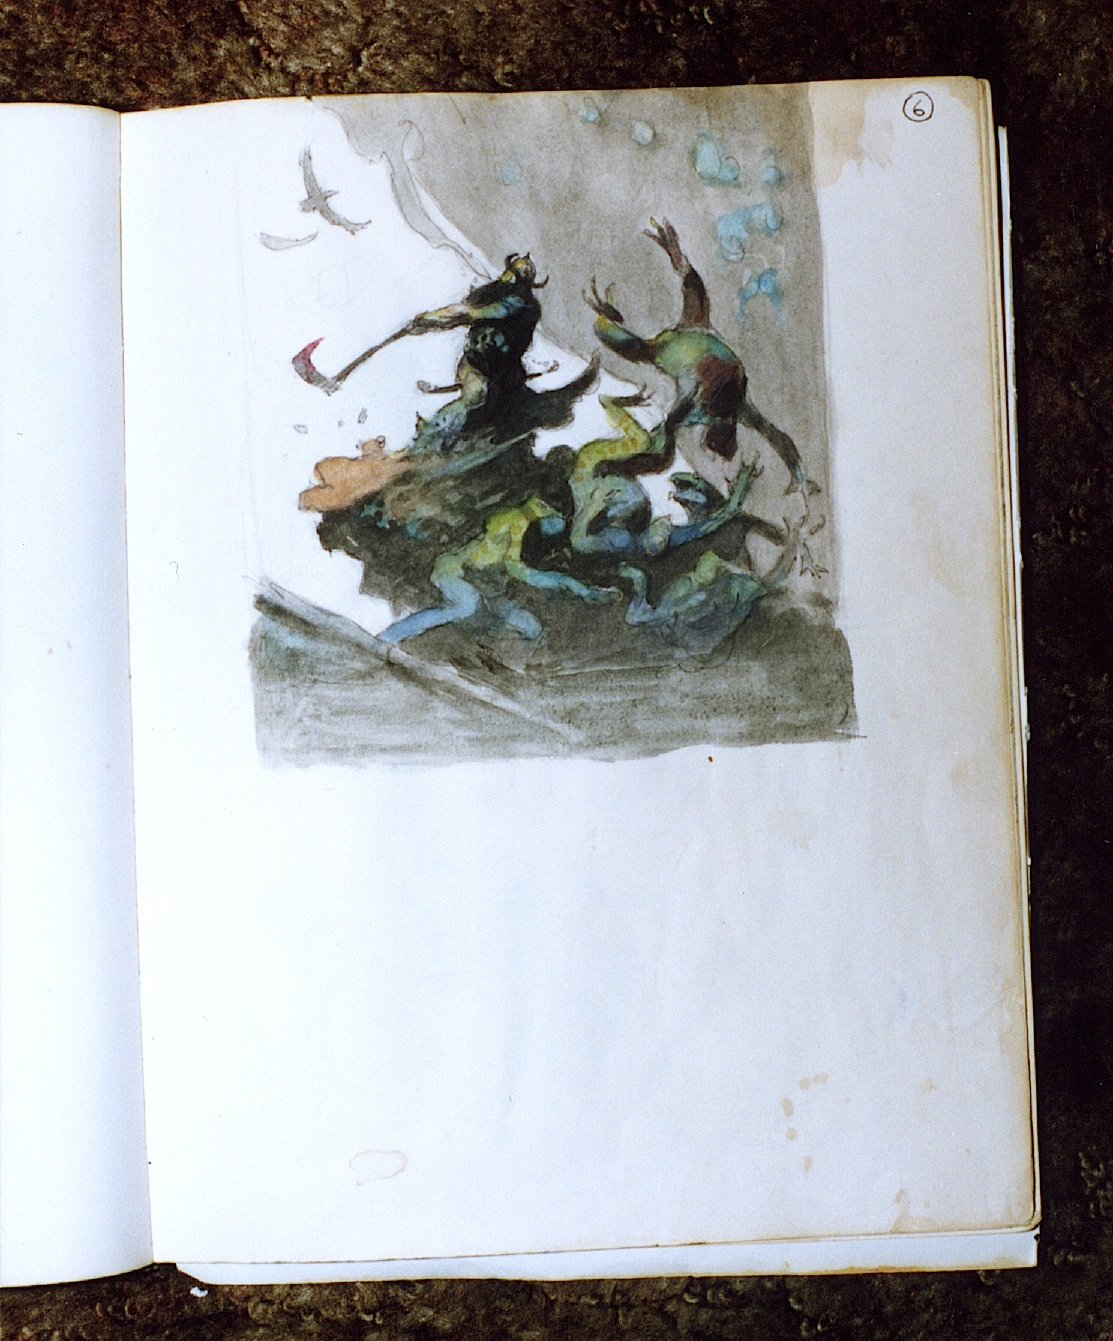 1980 National Cartoonists Society Great Painted Print By Frank Frazetta Bronze Age (1970-83)